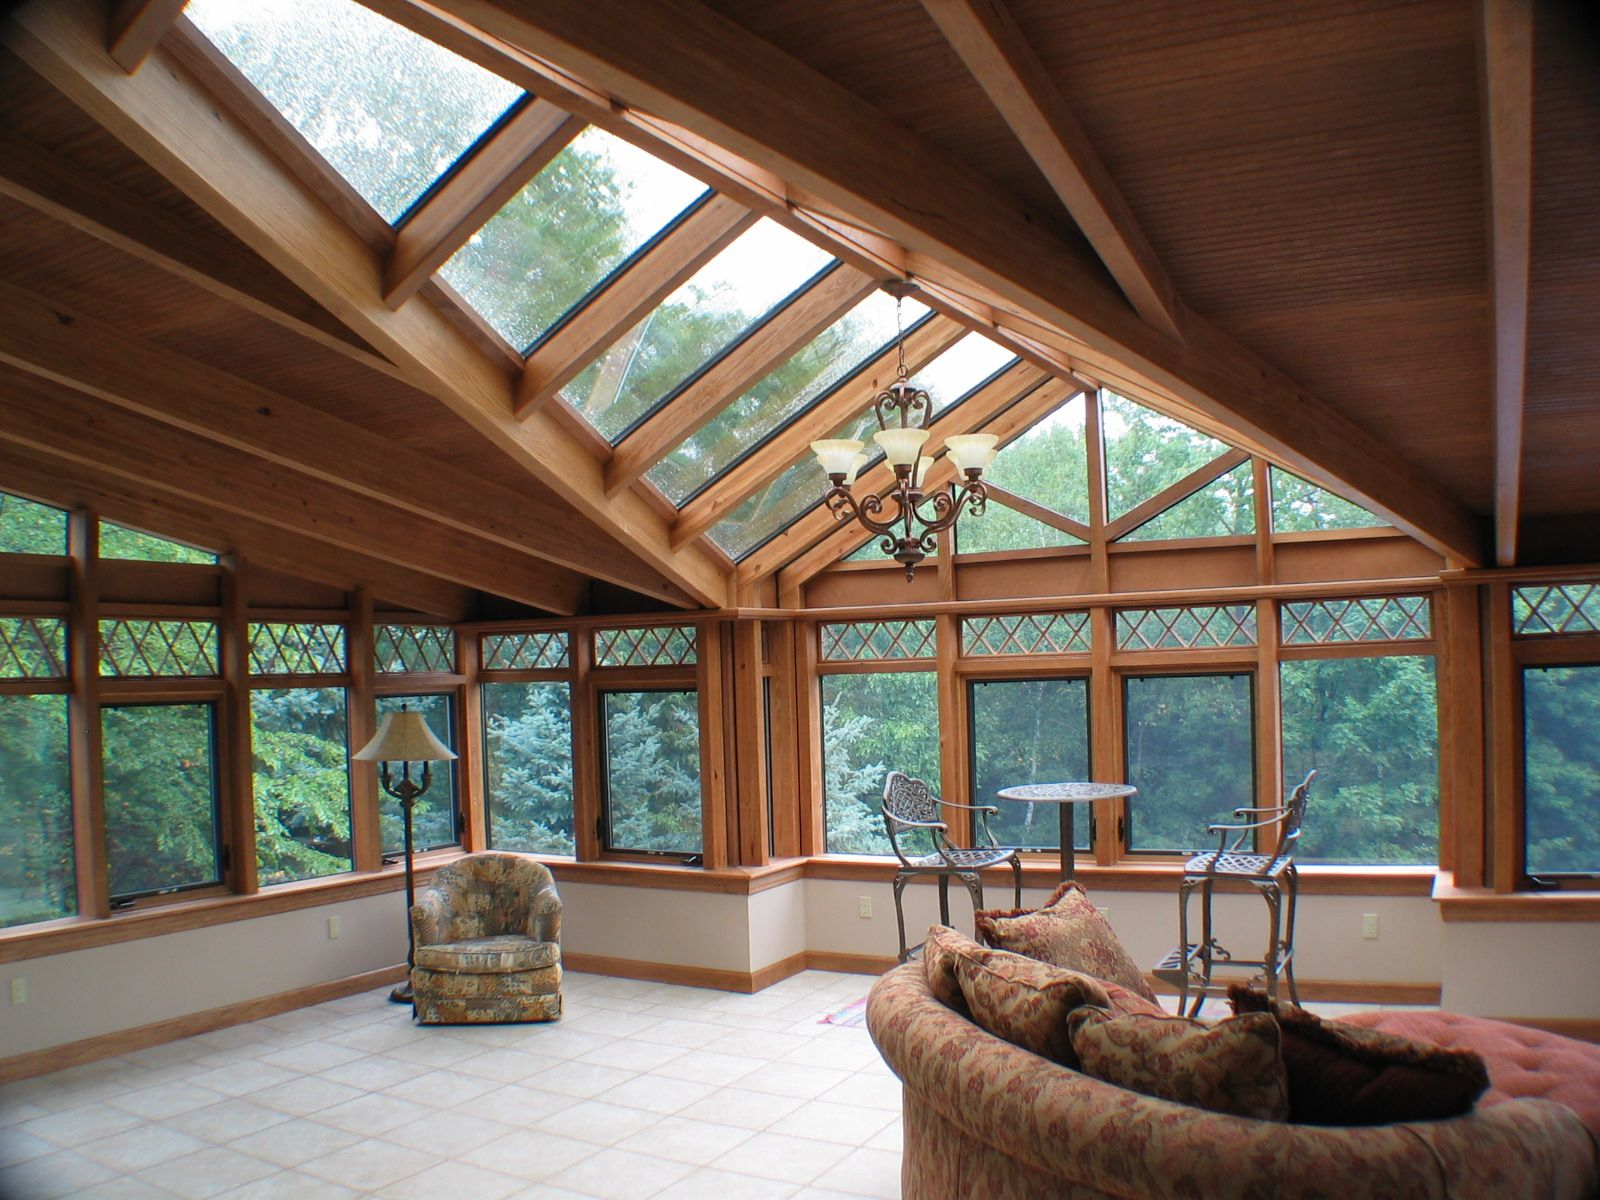 How I Did It: Installing a Skylight | Skylight, Mountain houses and Room